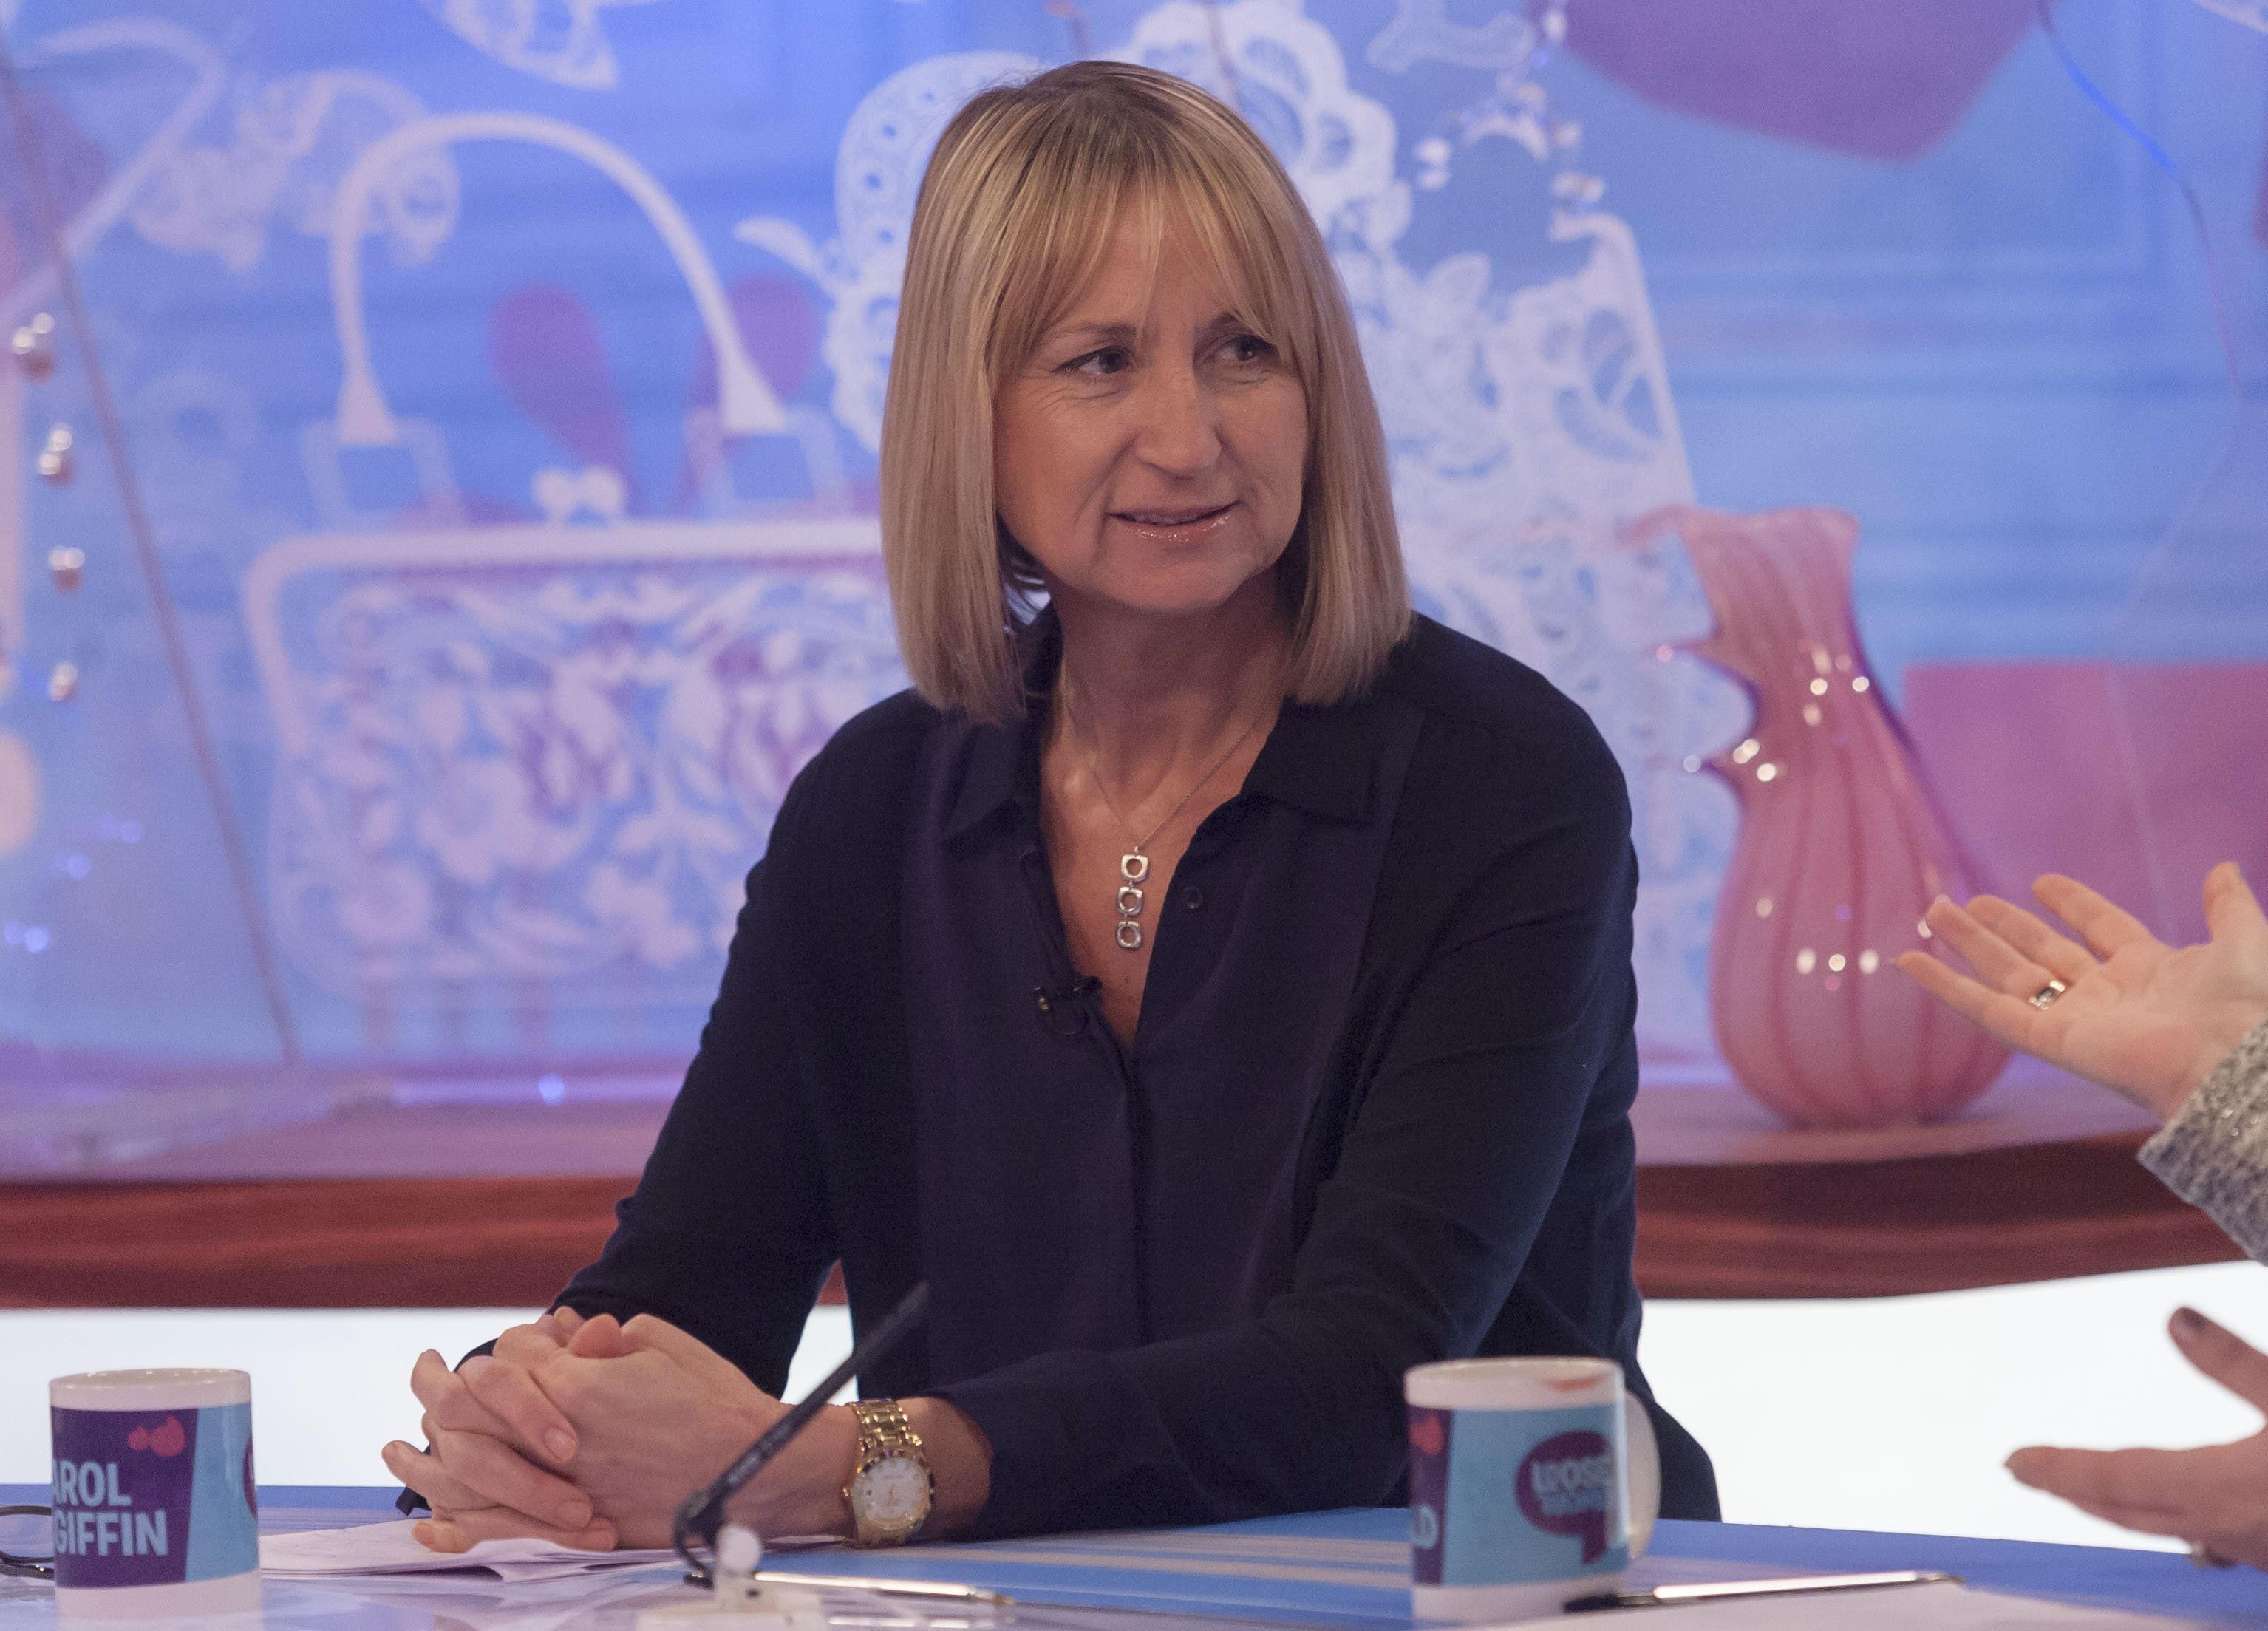 Carol McGiffin has not been invited back for Loose Women's 18th